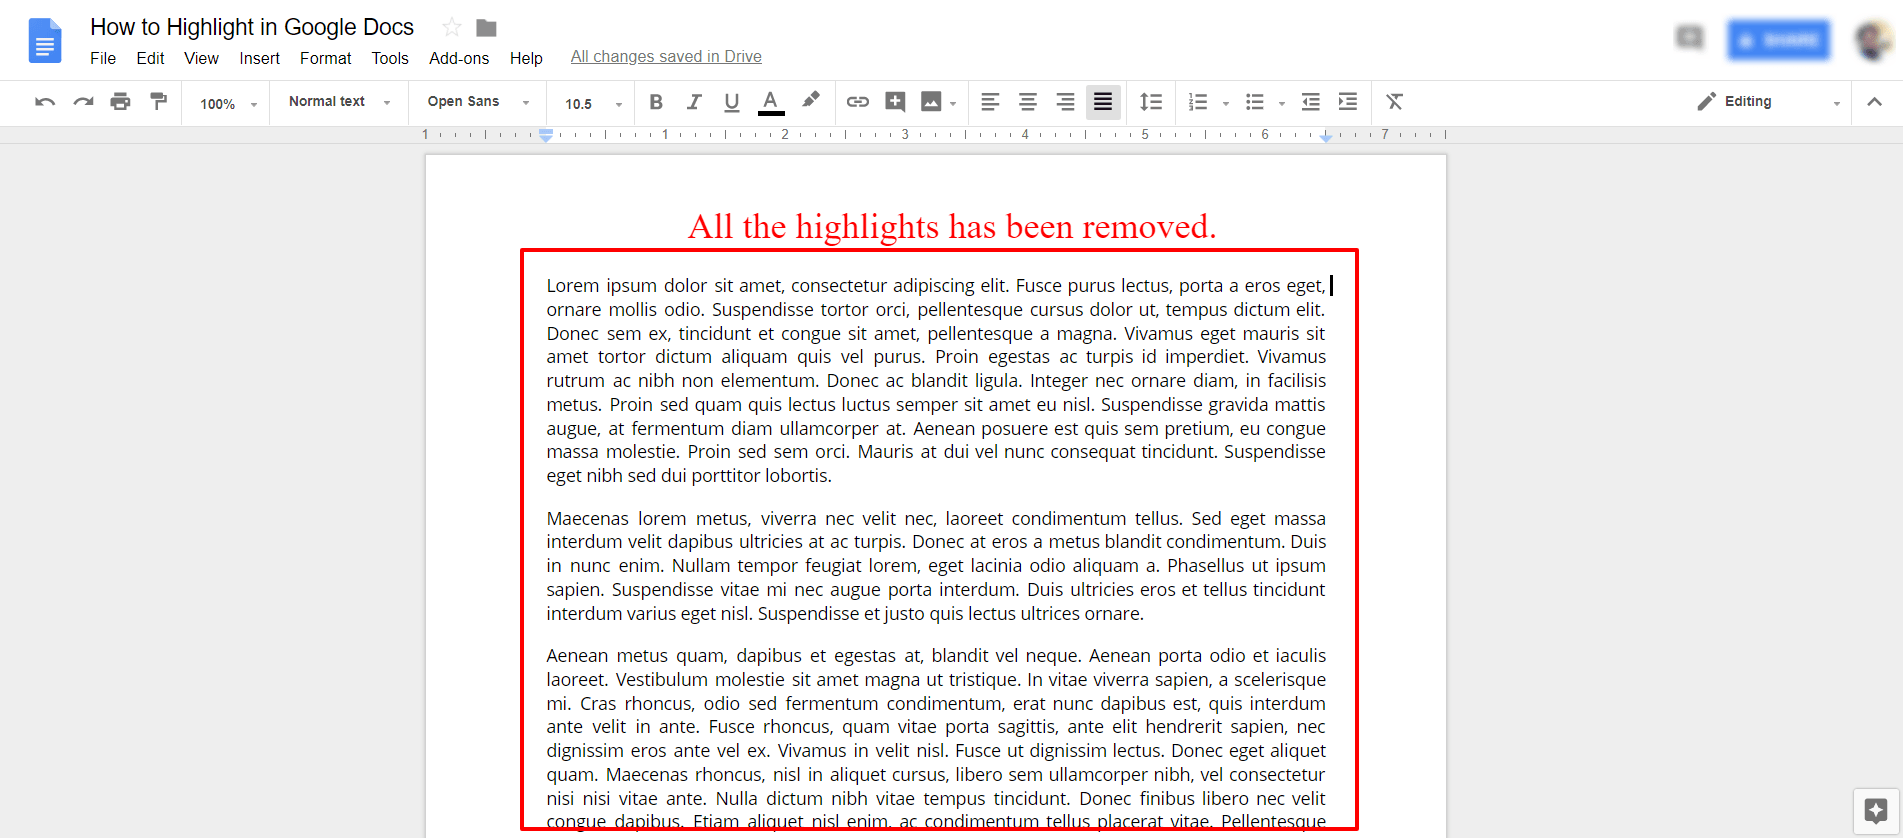 Removed Highlights - Google Docs